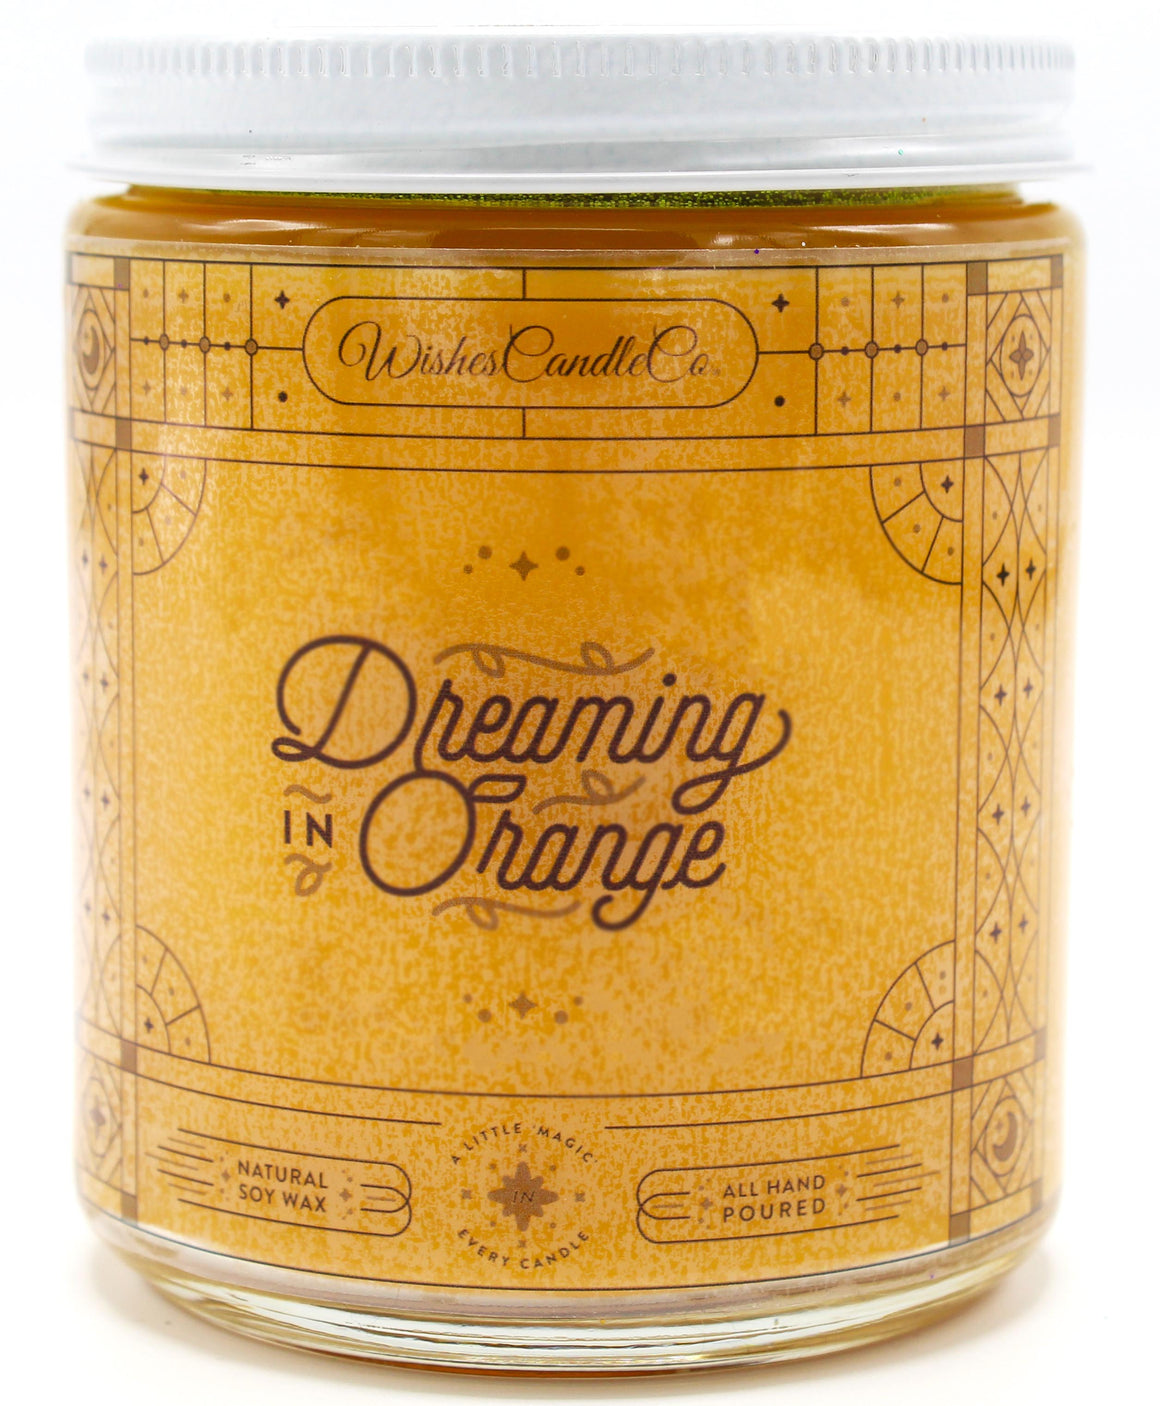 Dreaming in Orange 8oz Candle With Free Pin Inside